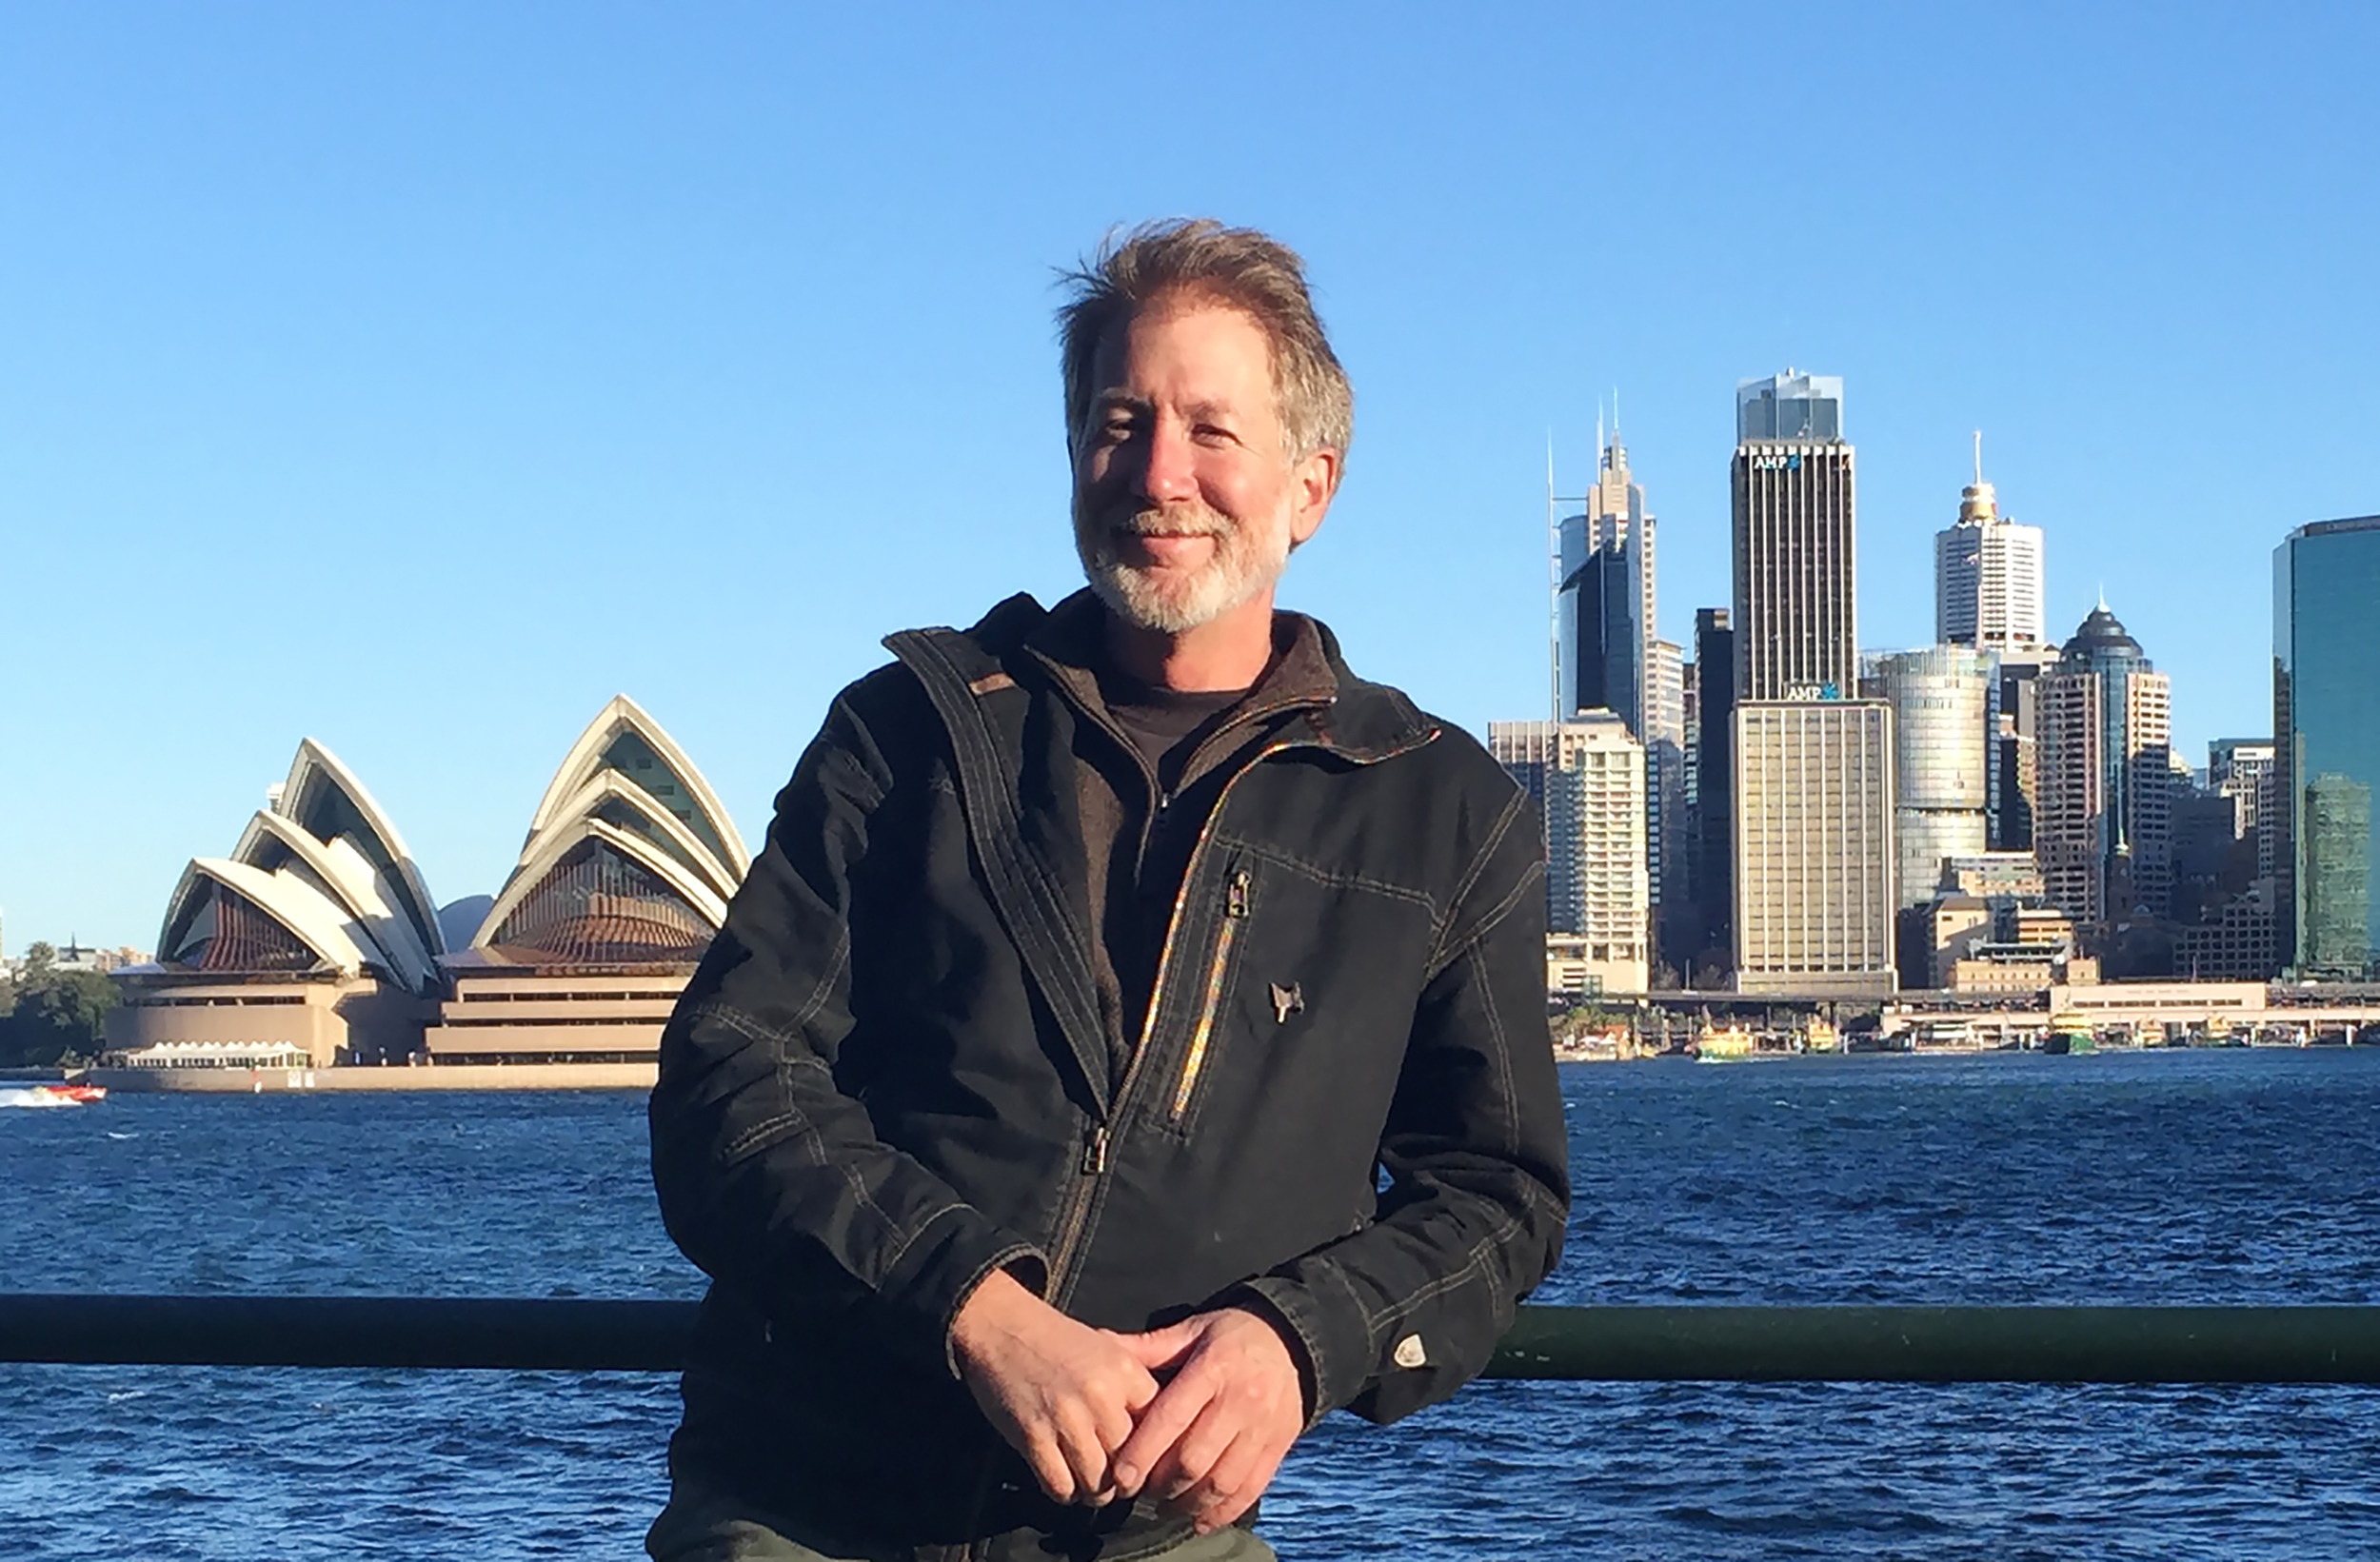 Blacksmith and artists Rick Smith in Sydney, Australia.He was invited by the Artist Blacksmith Association of New South Wales to teach a workshop as a visiting artist in 2015.